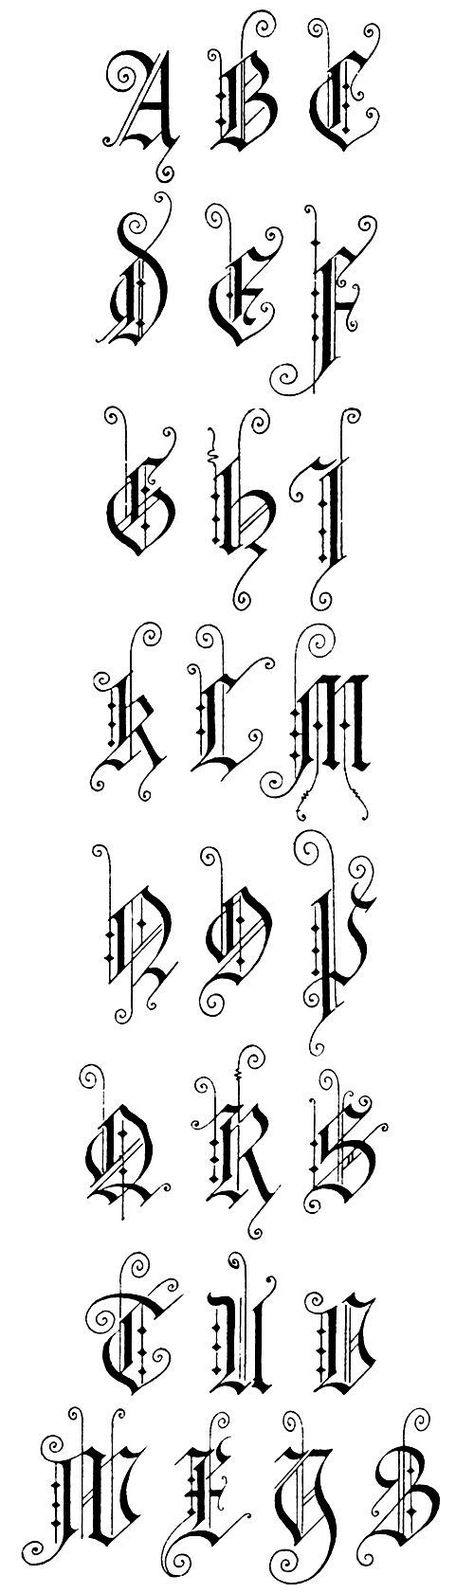 Here are six different styles of Gothic Lettering published in 1918